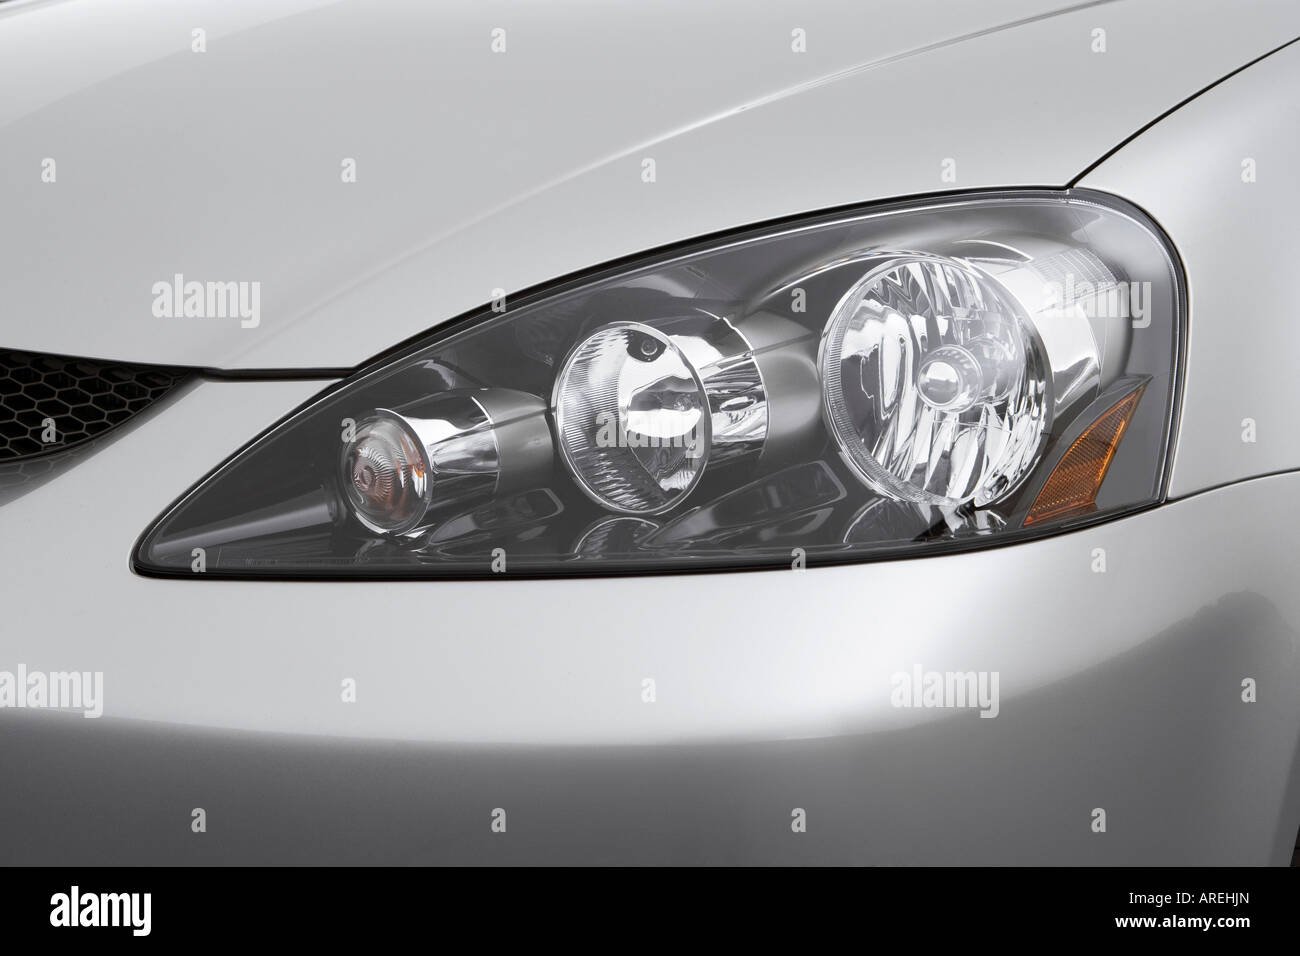 2006 acura rsx type s in silver headlight stock photo 16030892